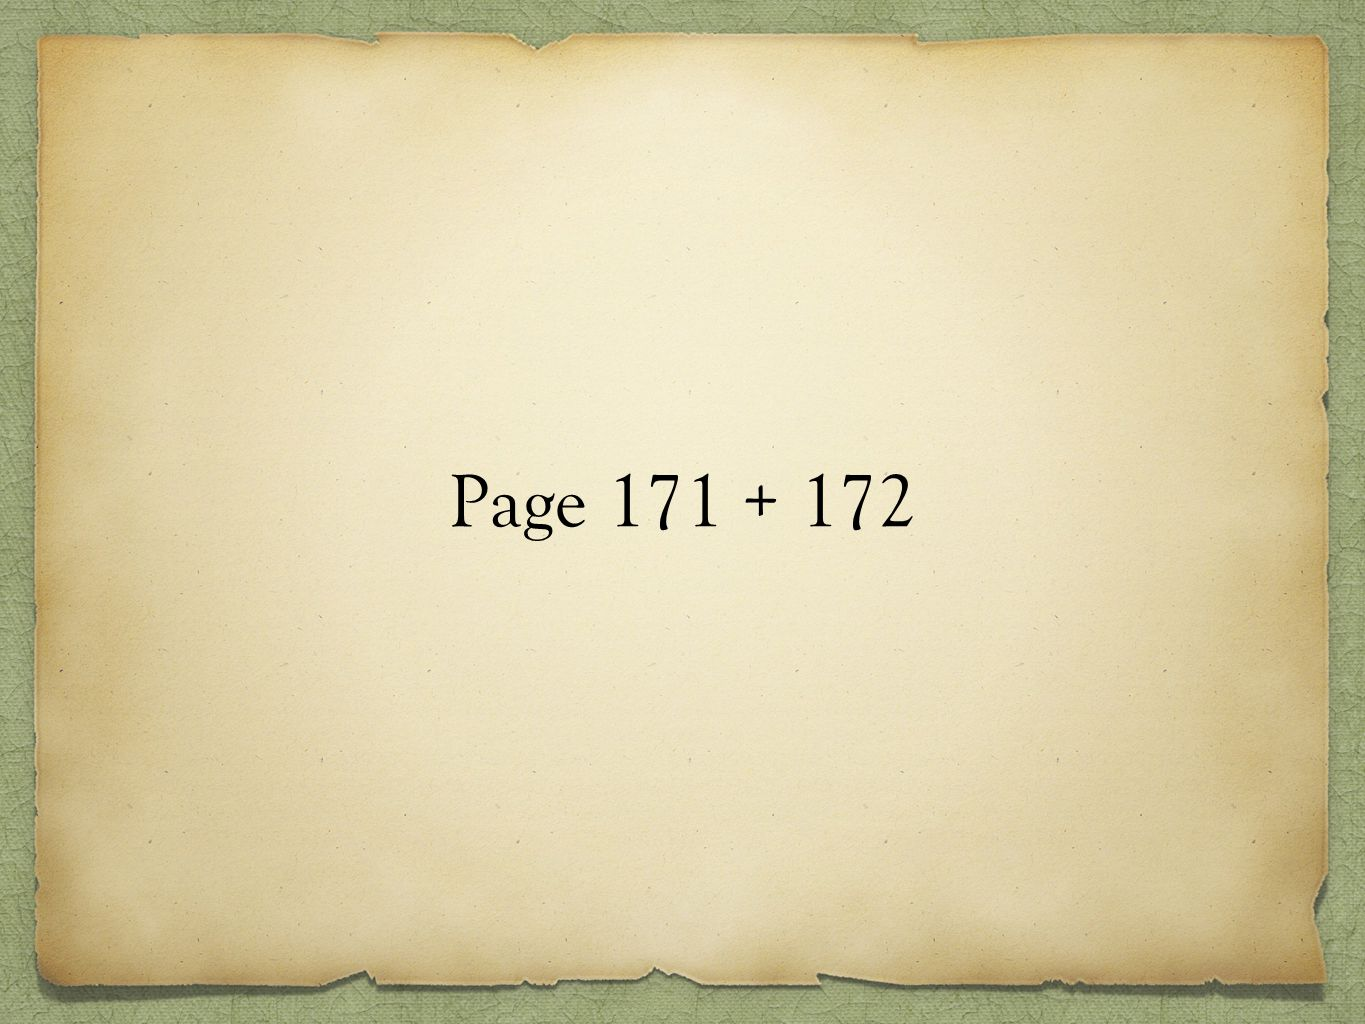 Page 171 + 172